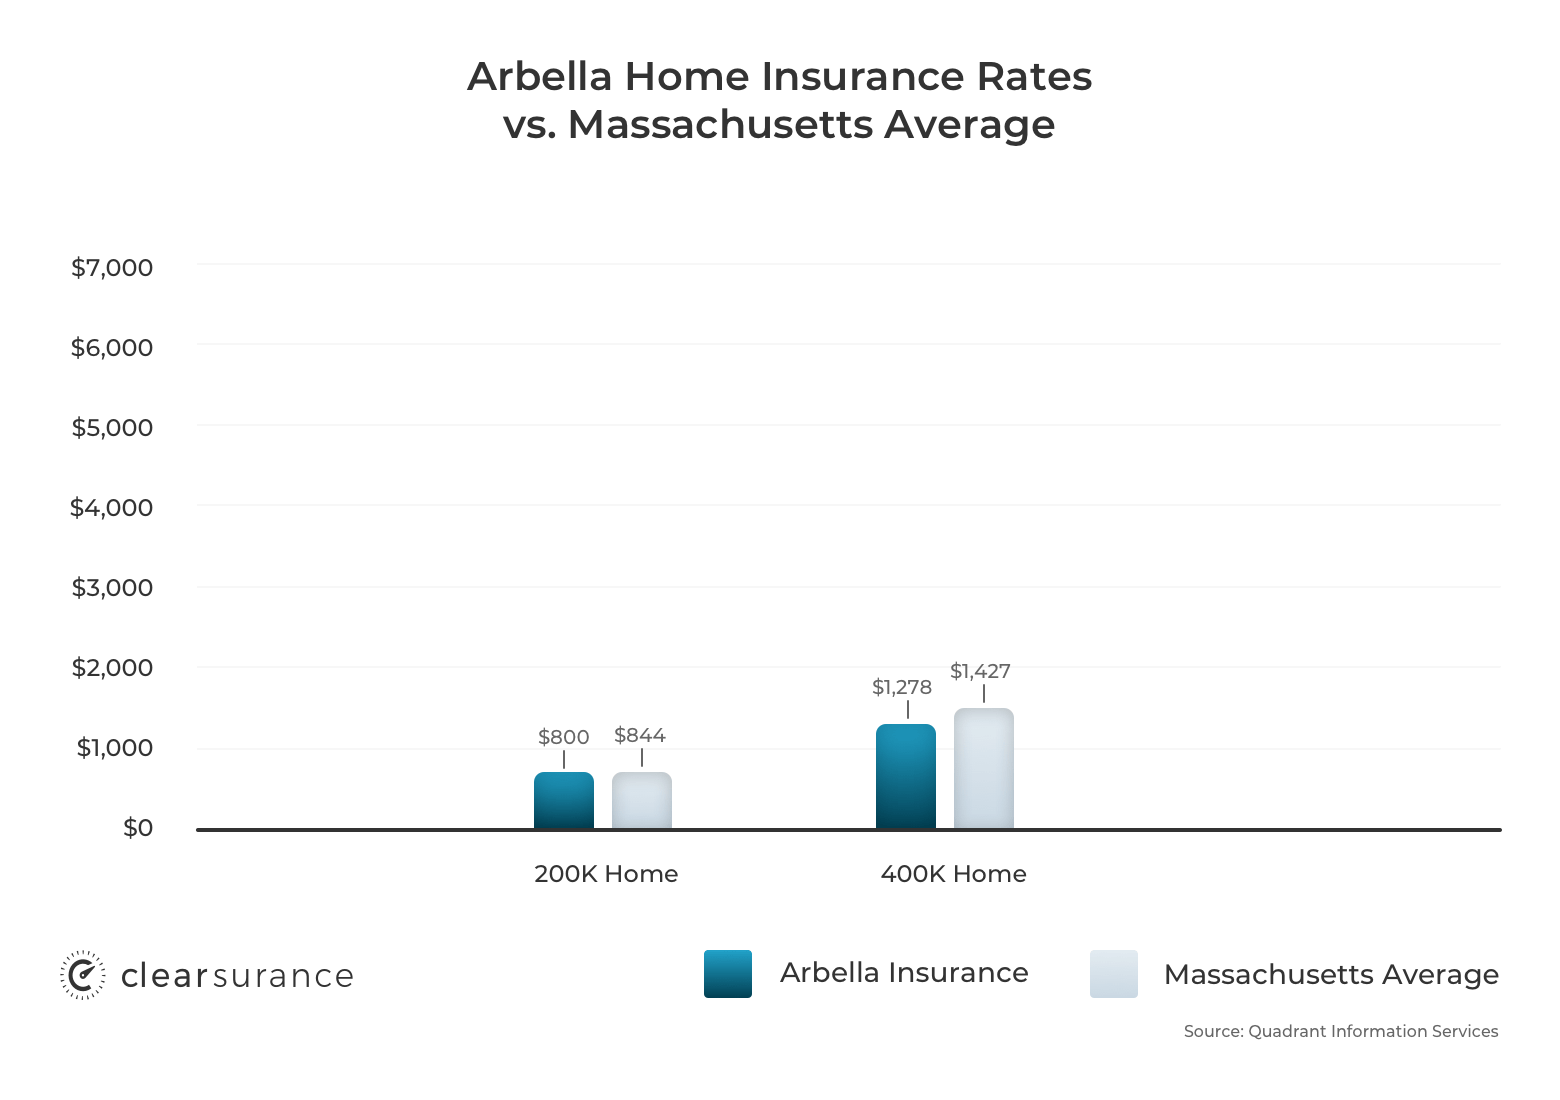 Arbella homeowners insurance rates